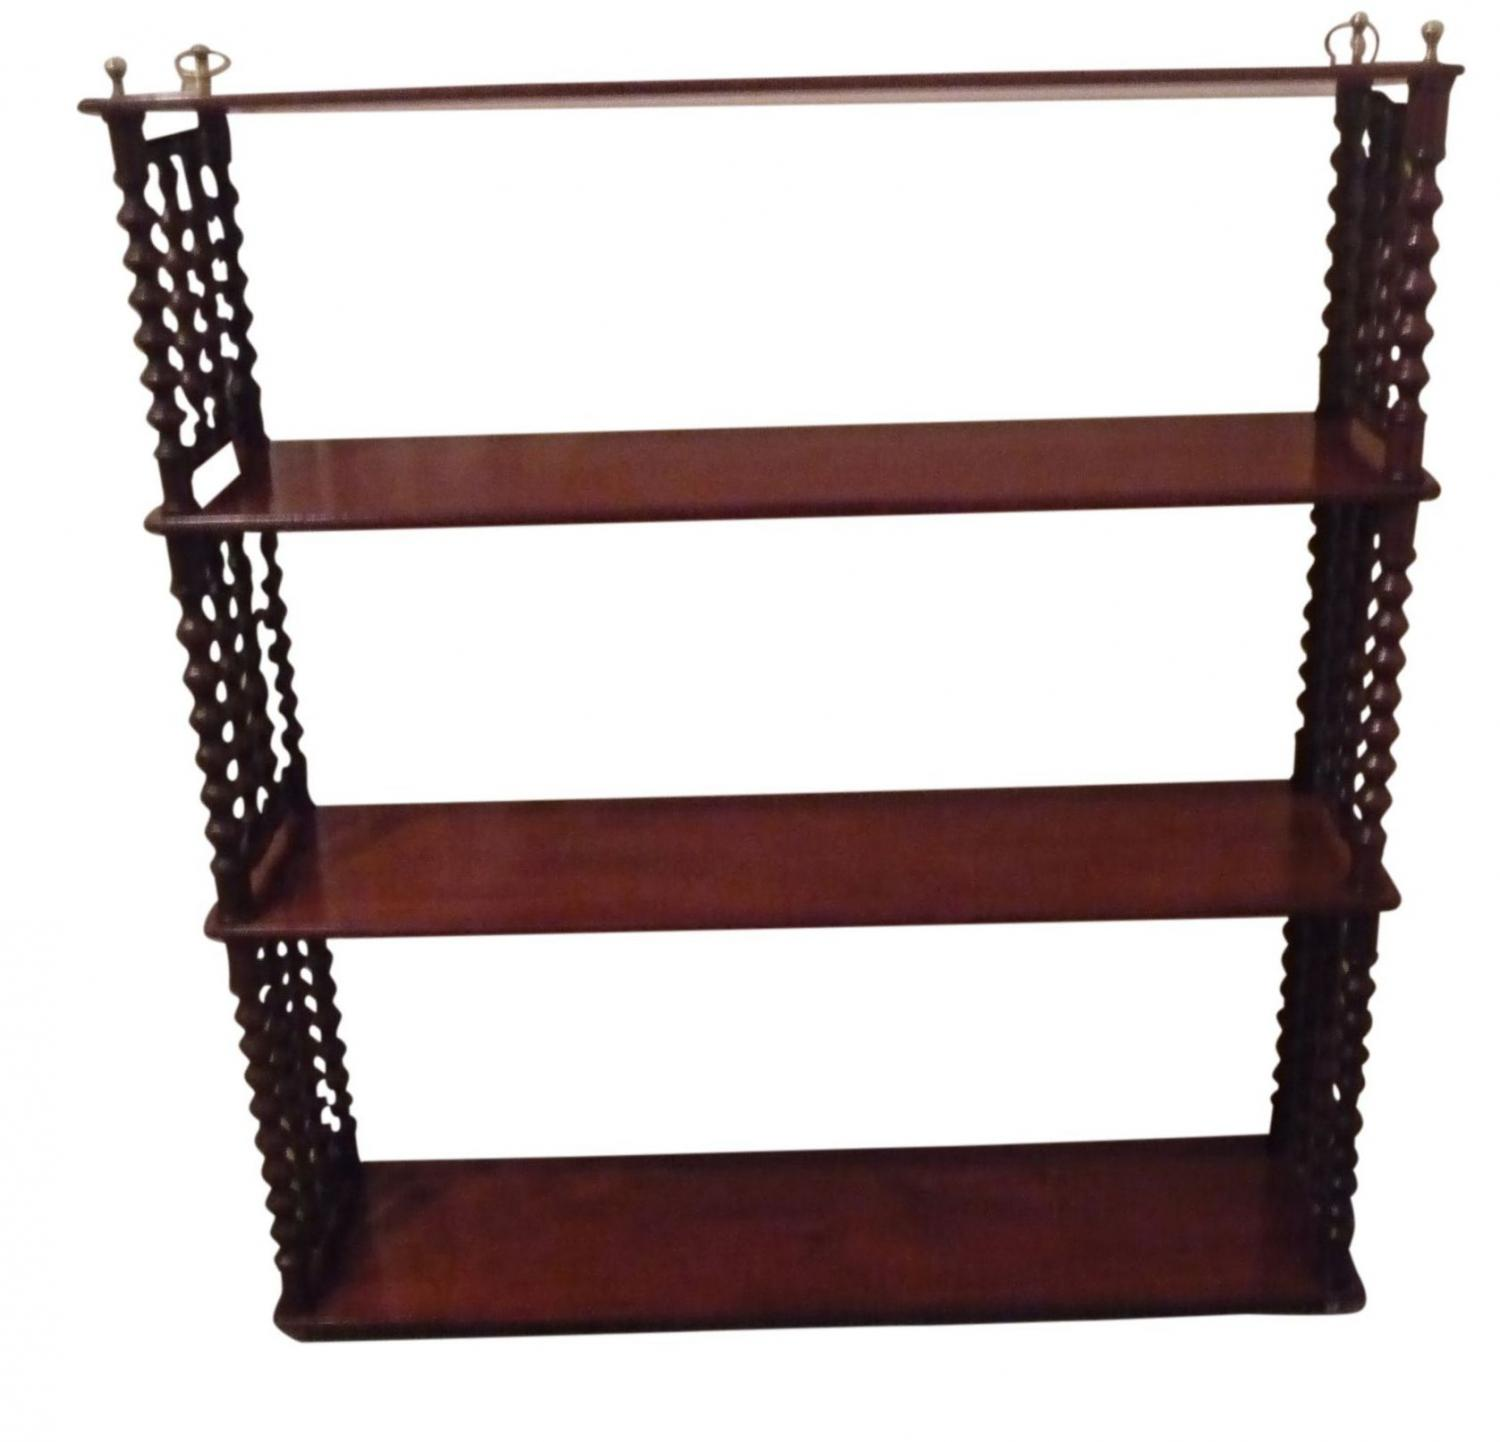 Mahogany wall shelves french circa 1880 in sold mahogany wall shelves french circa 1880 picture 2 amipublicfo Image collections